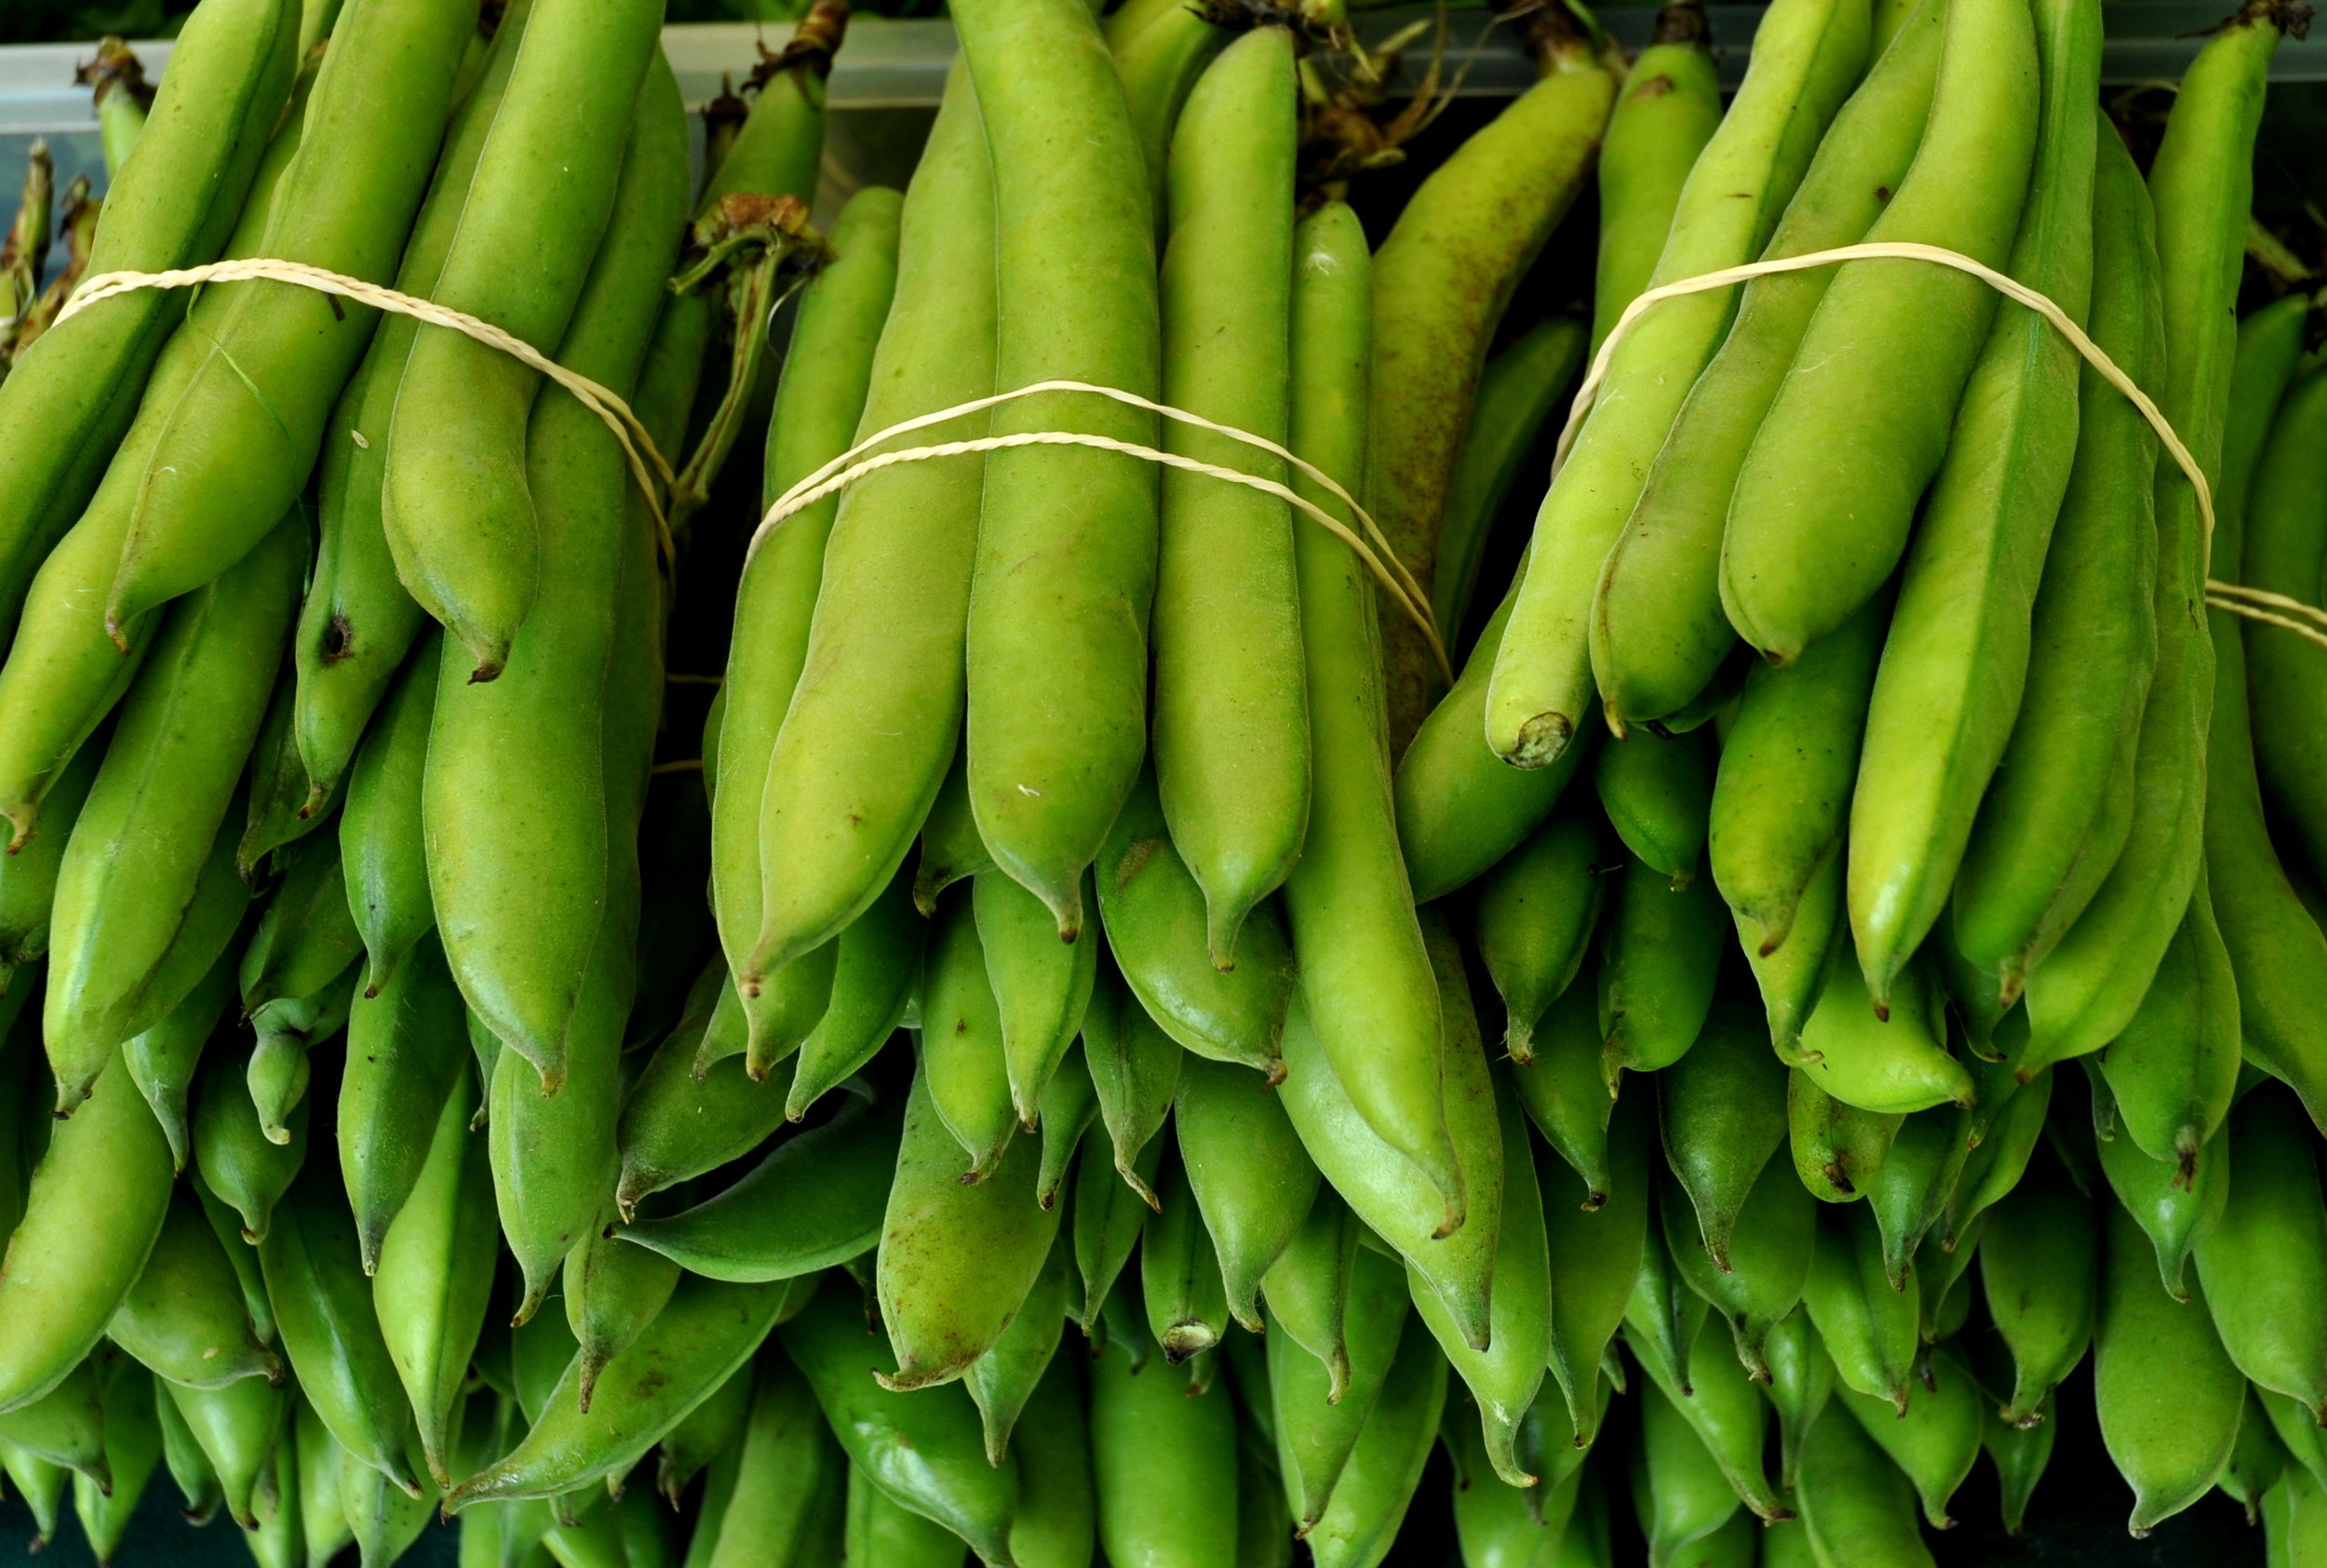 Fresh fava beans from Children's Garden. Photo copyright 2013 by Zachary D. Lyons.